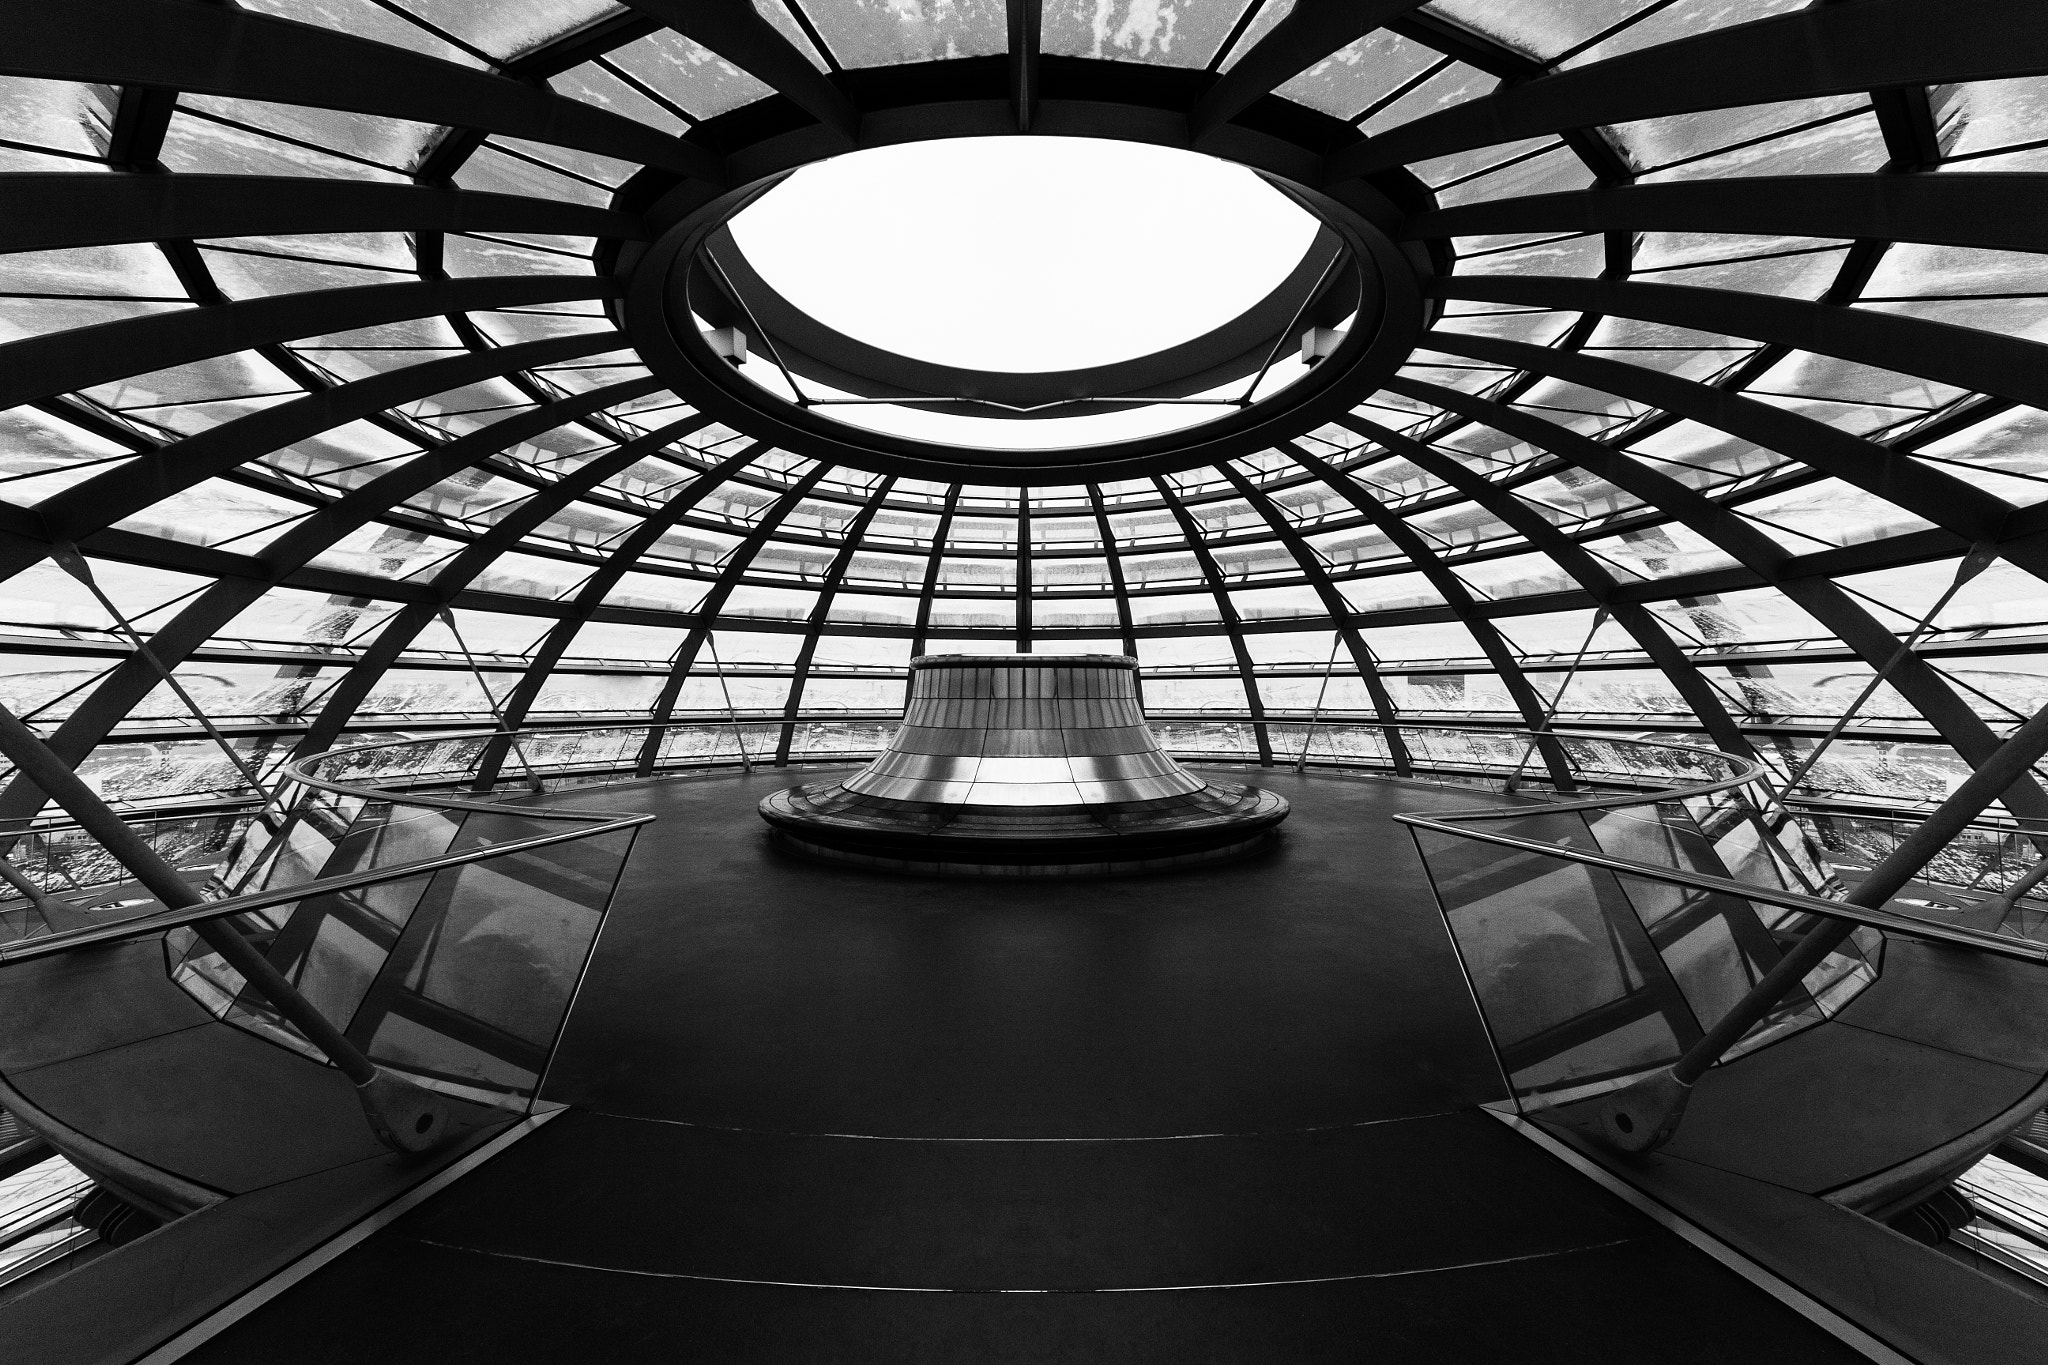 Photograph dome by Axel Kuenne on 500px